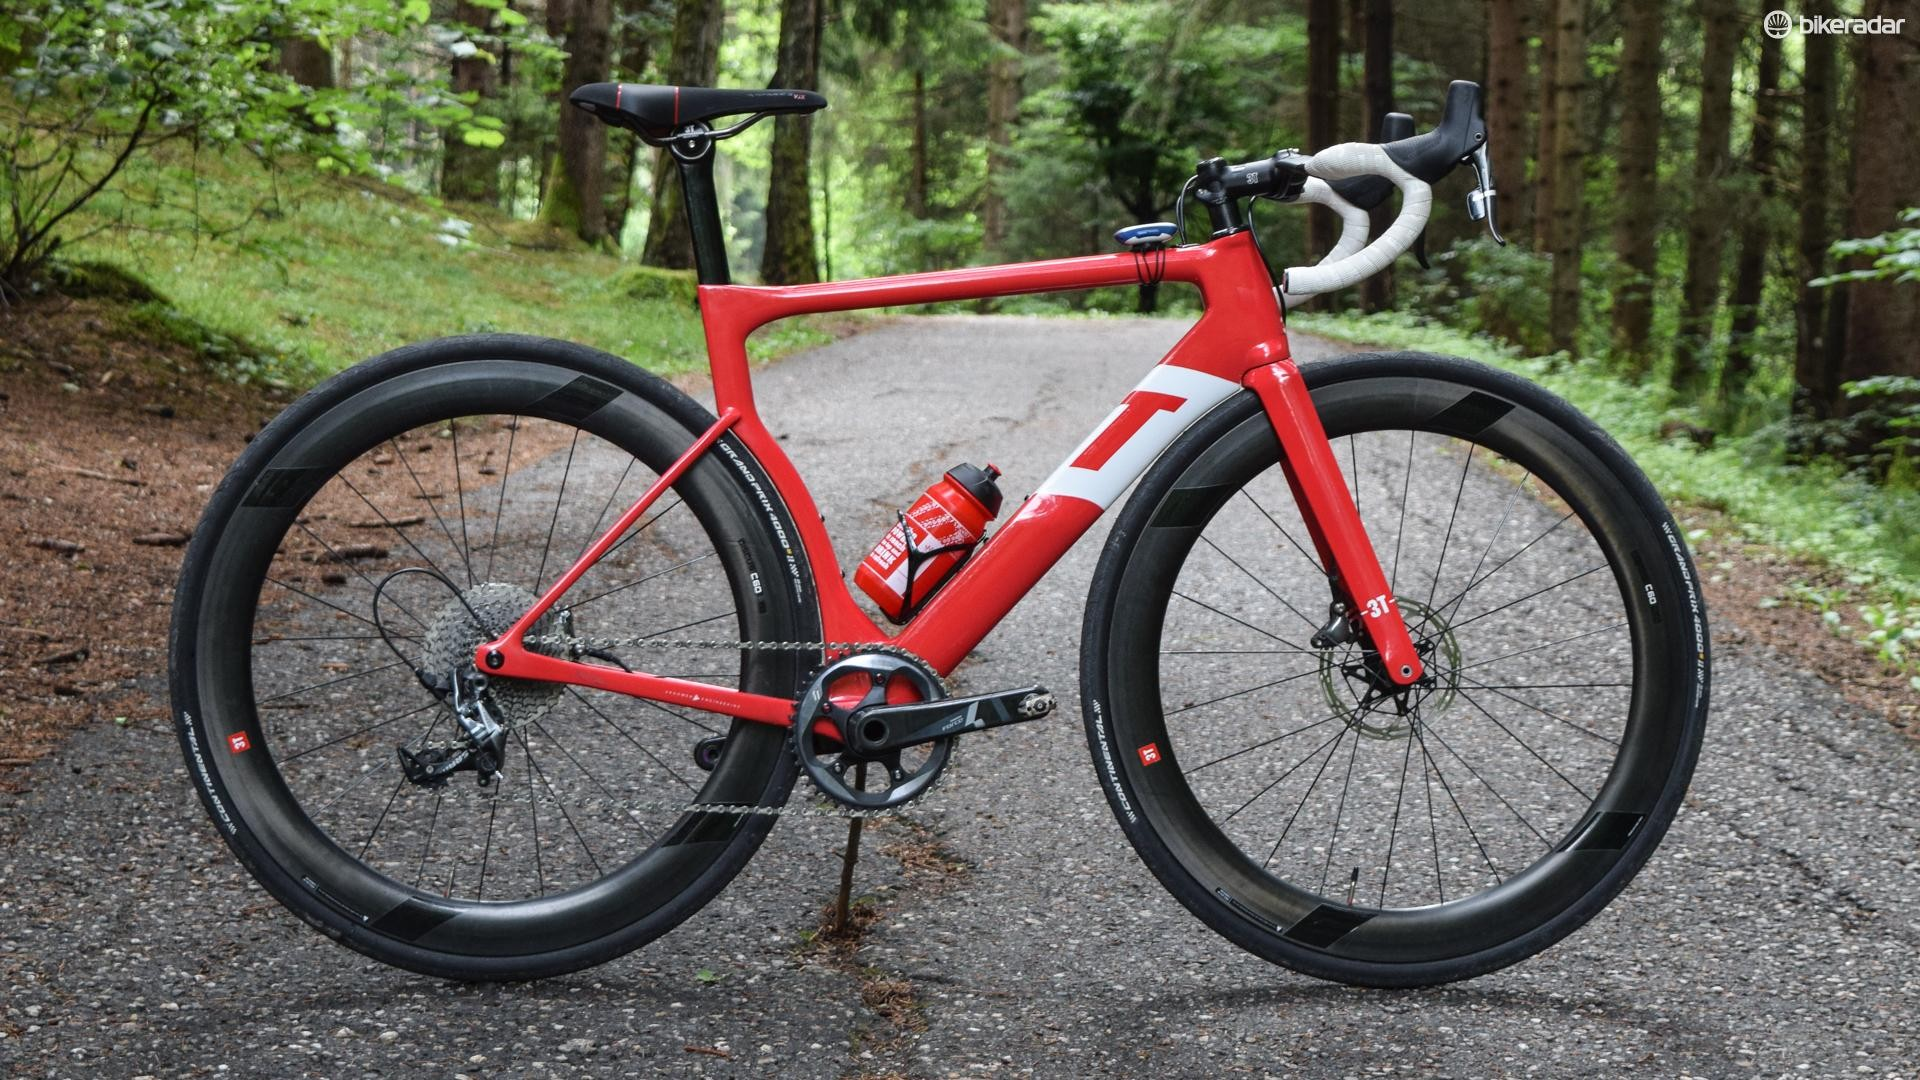 3T took full advantage of a 1x drivetrain with the new, slightly quirky, Strada